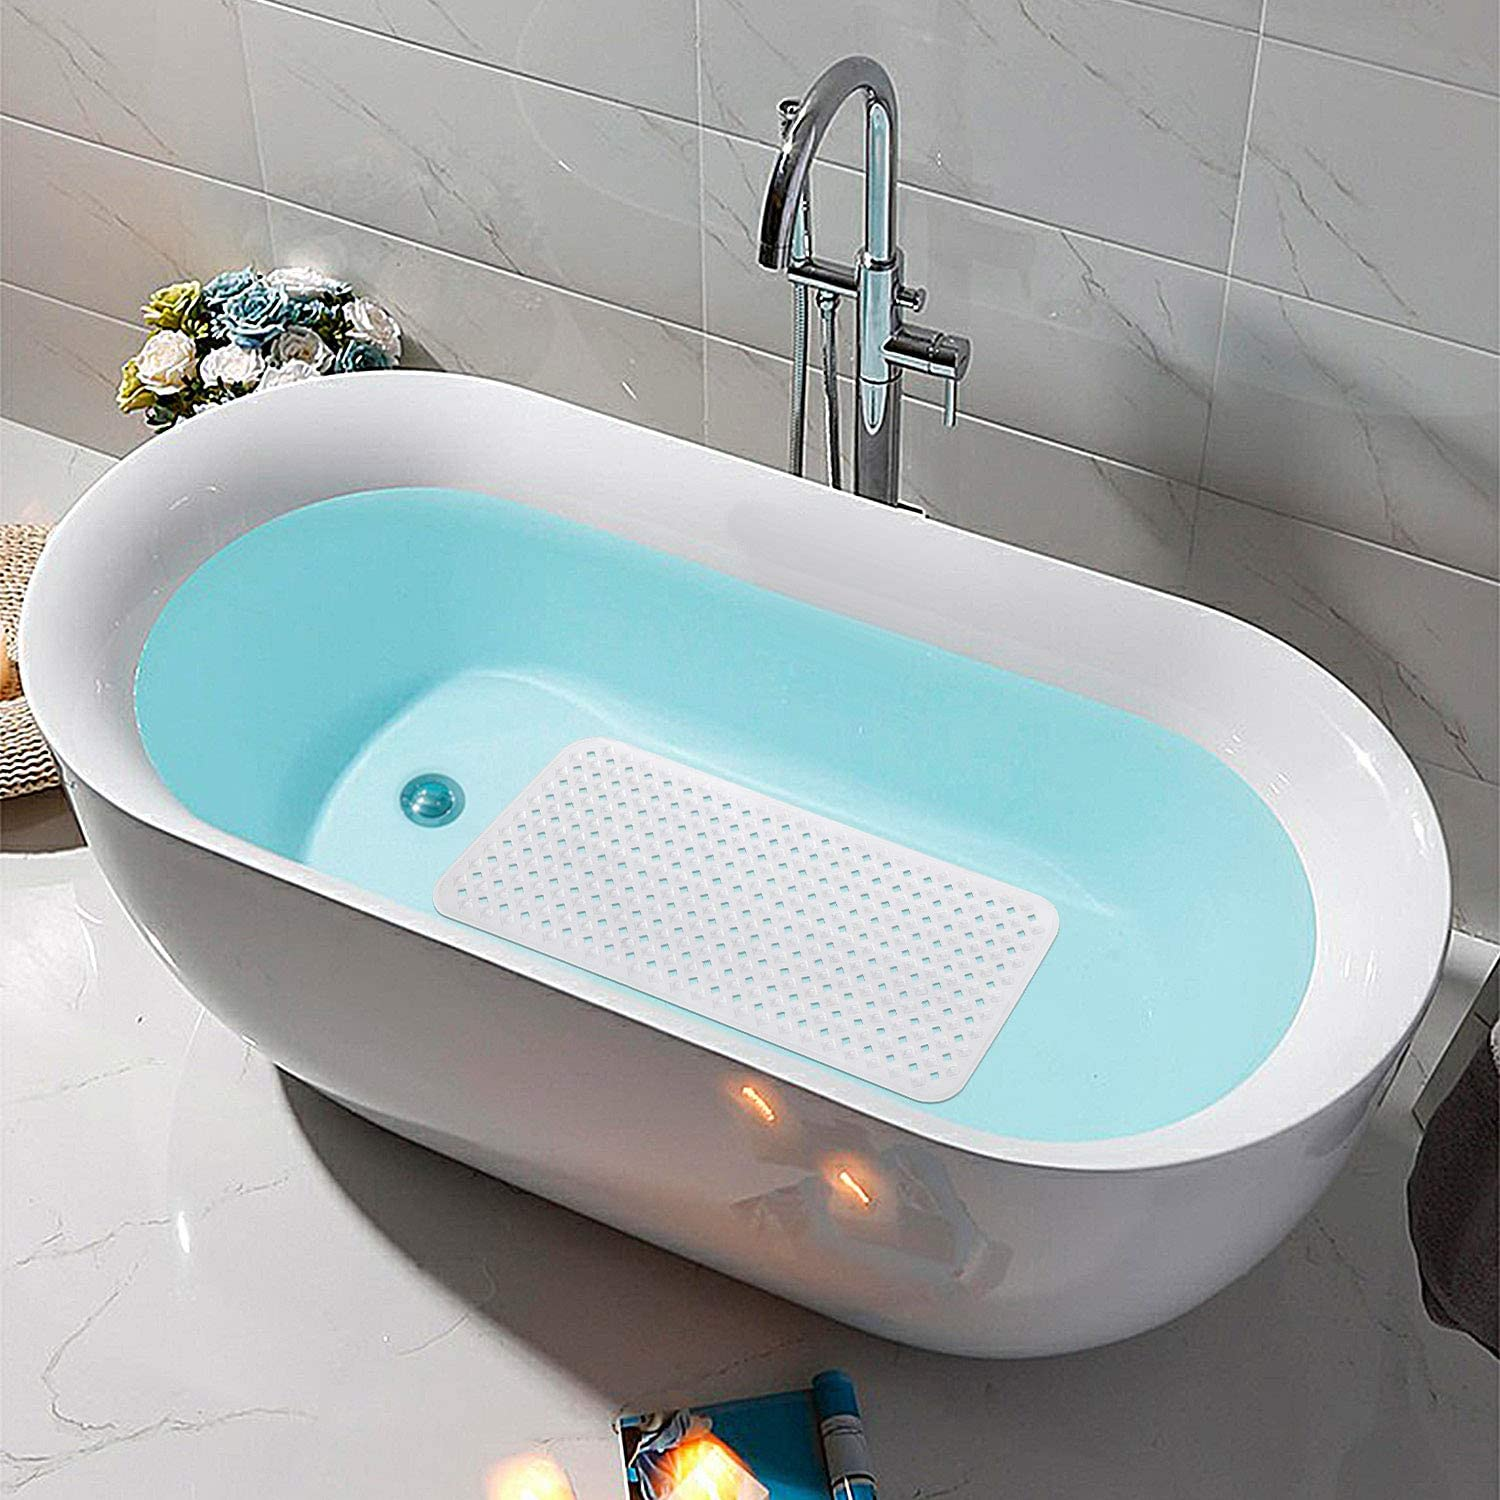 35x15.5 Inch Clear Non-Slip and Phthalate Latex Free,Bath tub Mat with Suction Cups,Machine Washable XL Size Bathroom Mats EHZNZIE Bathtub Shower Mat